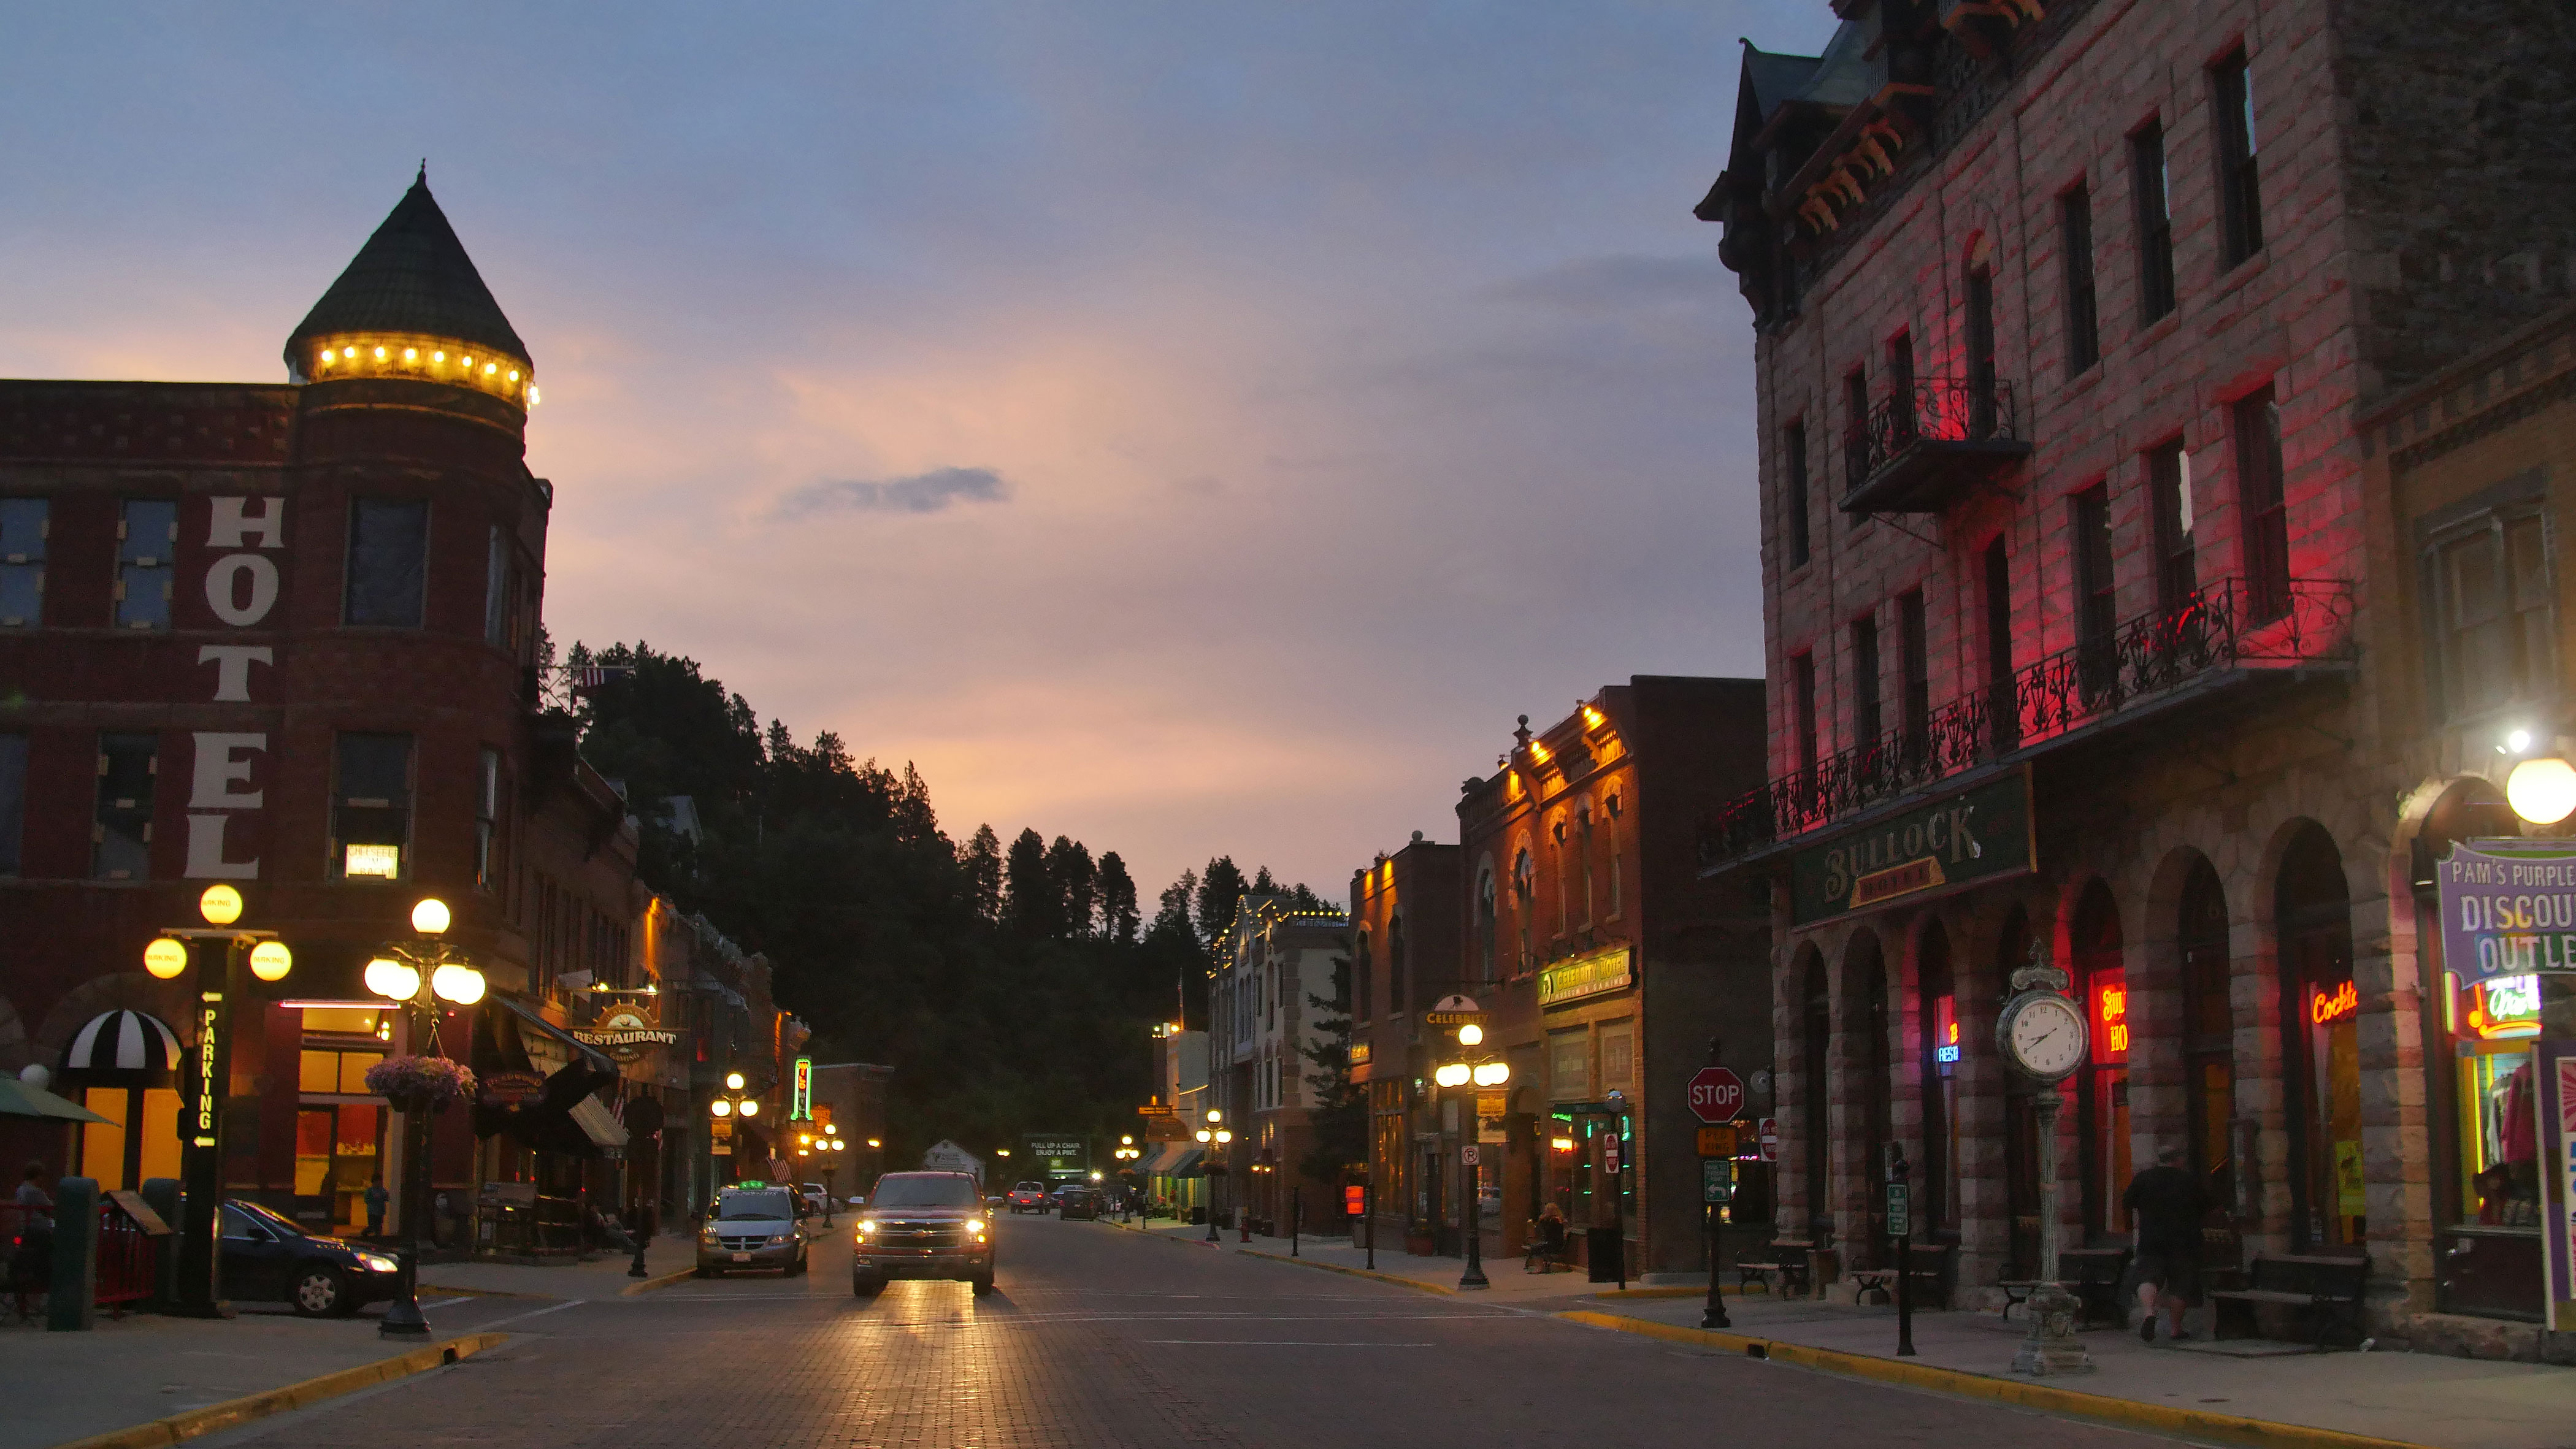 Fairmont and Bullock Hotels Main Street Deadwood